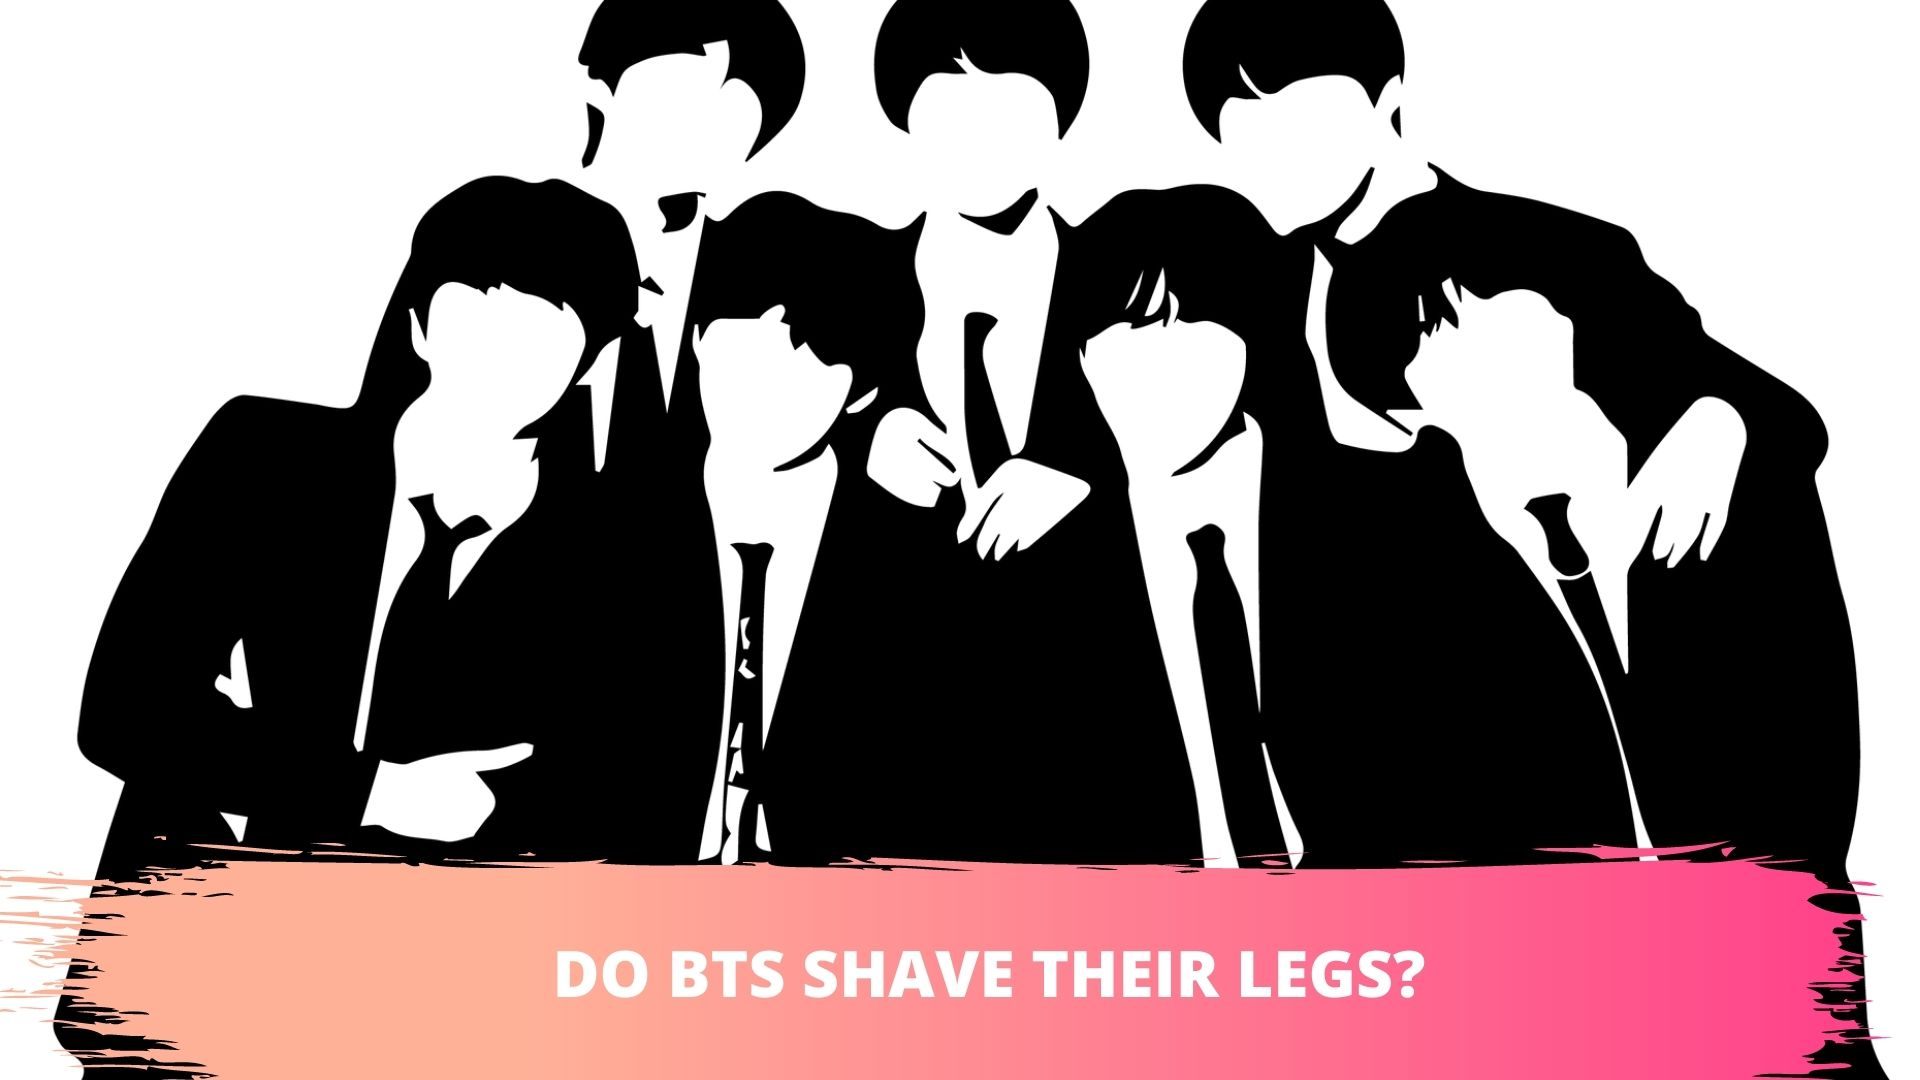 bts and kpop idols shaves their legs,armpits,arms,underam,chest